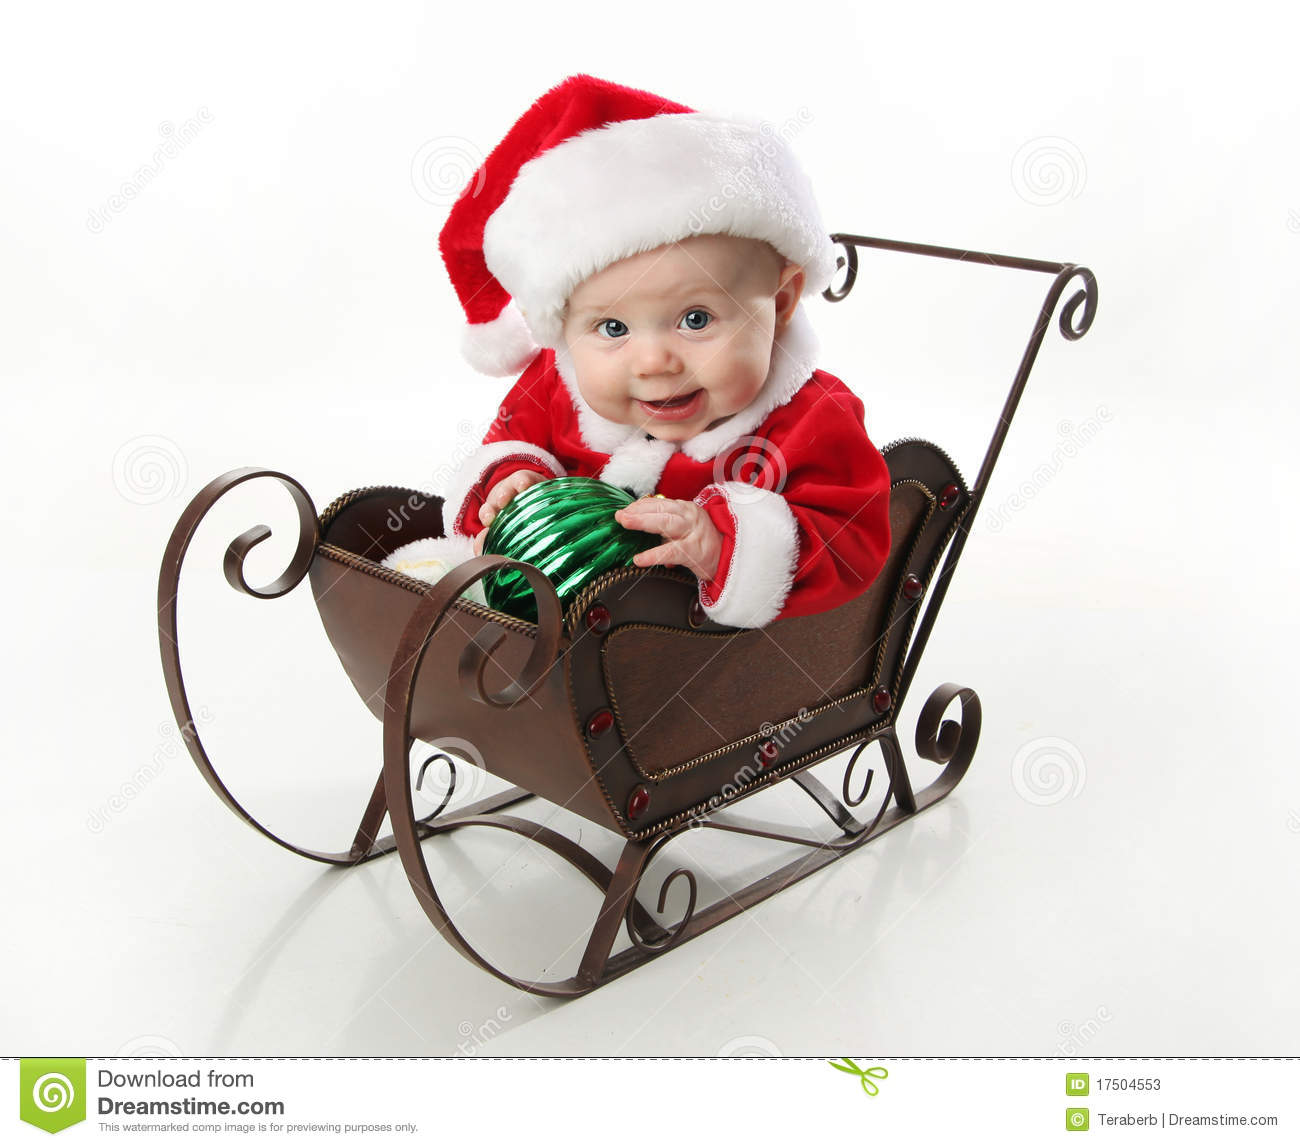 Santa sleigh ornament - Santa Baby Sitting In A Sleigh Stock Photos